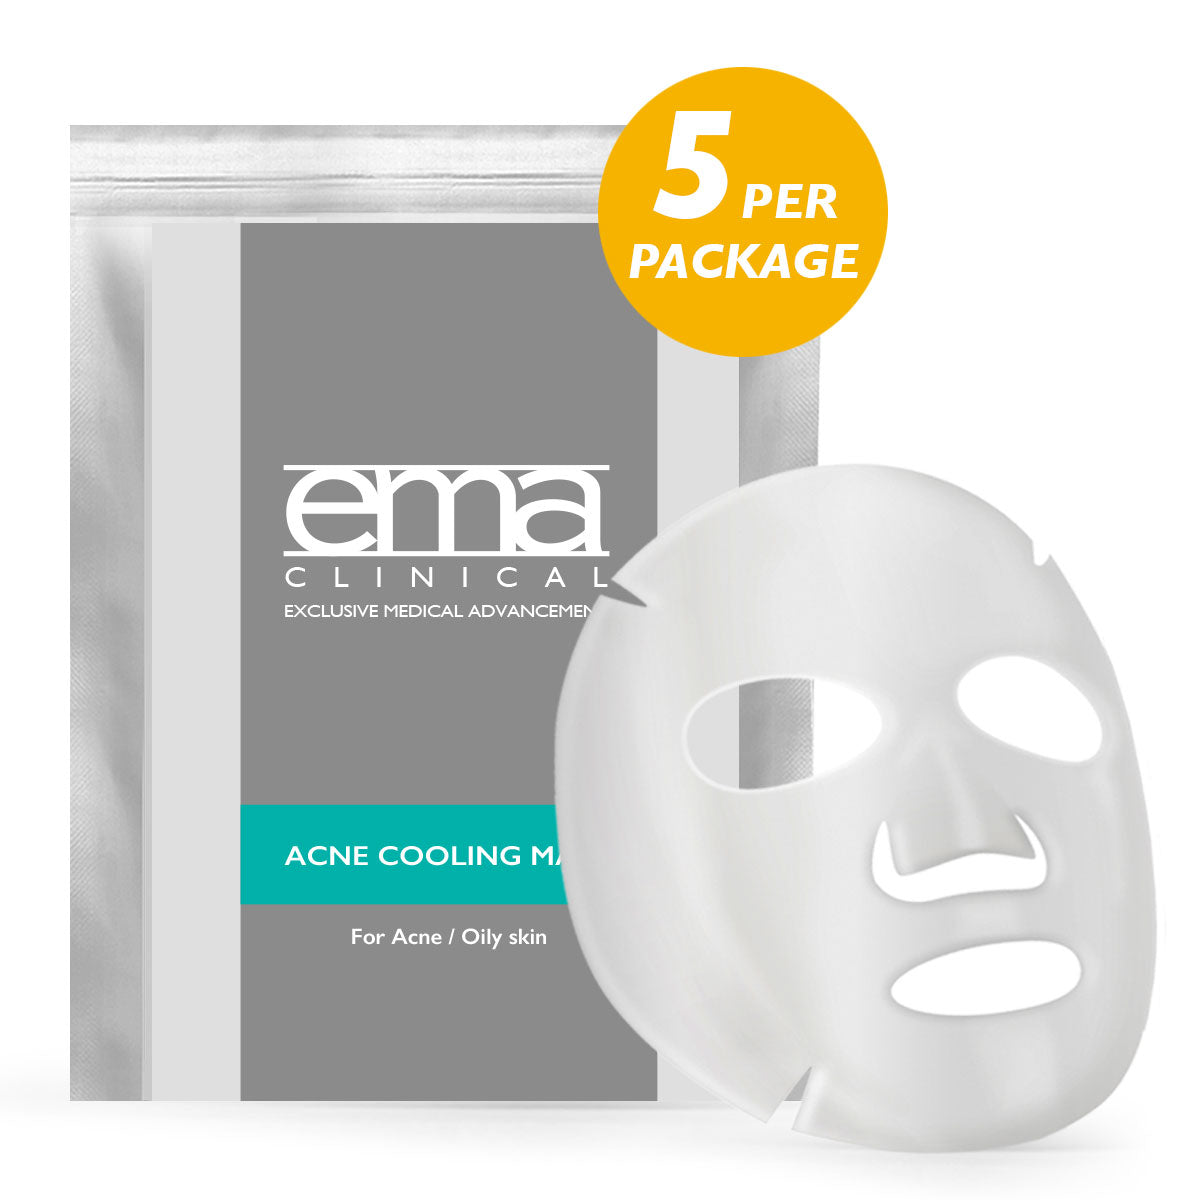 Acne Cooling Healing Mask